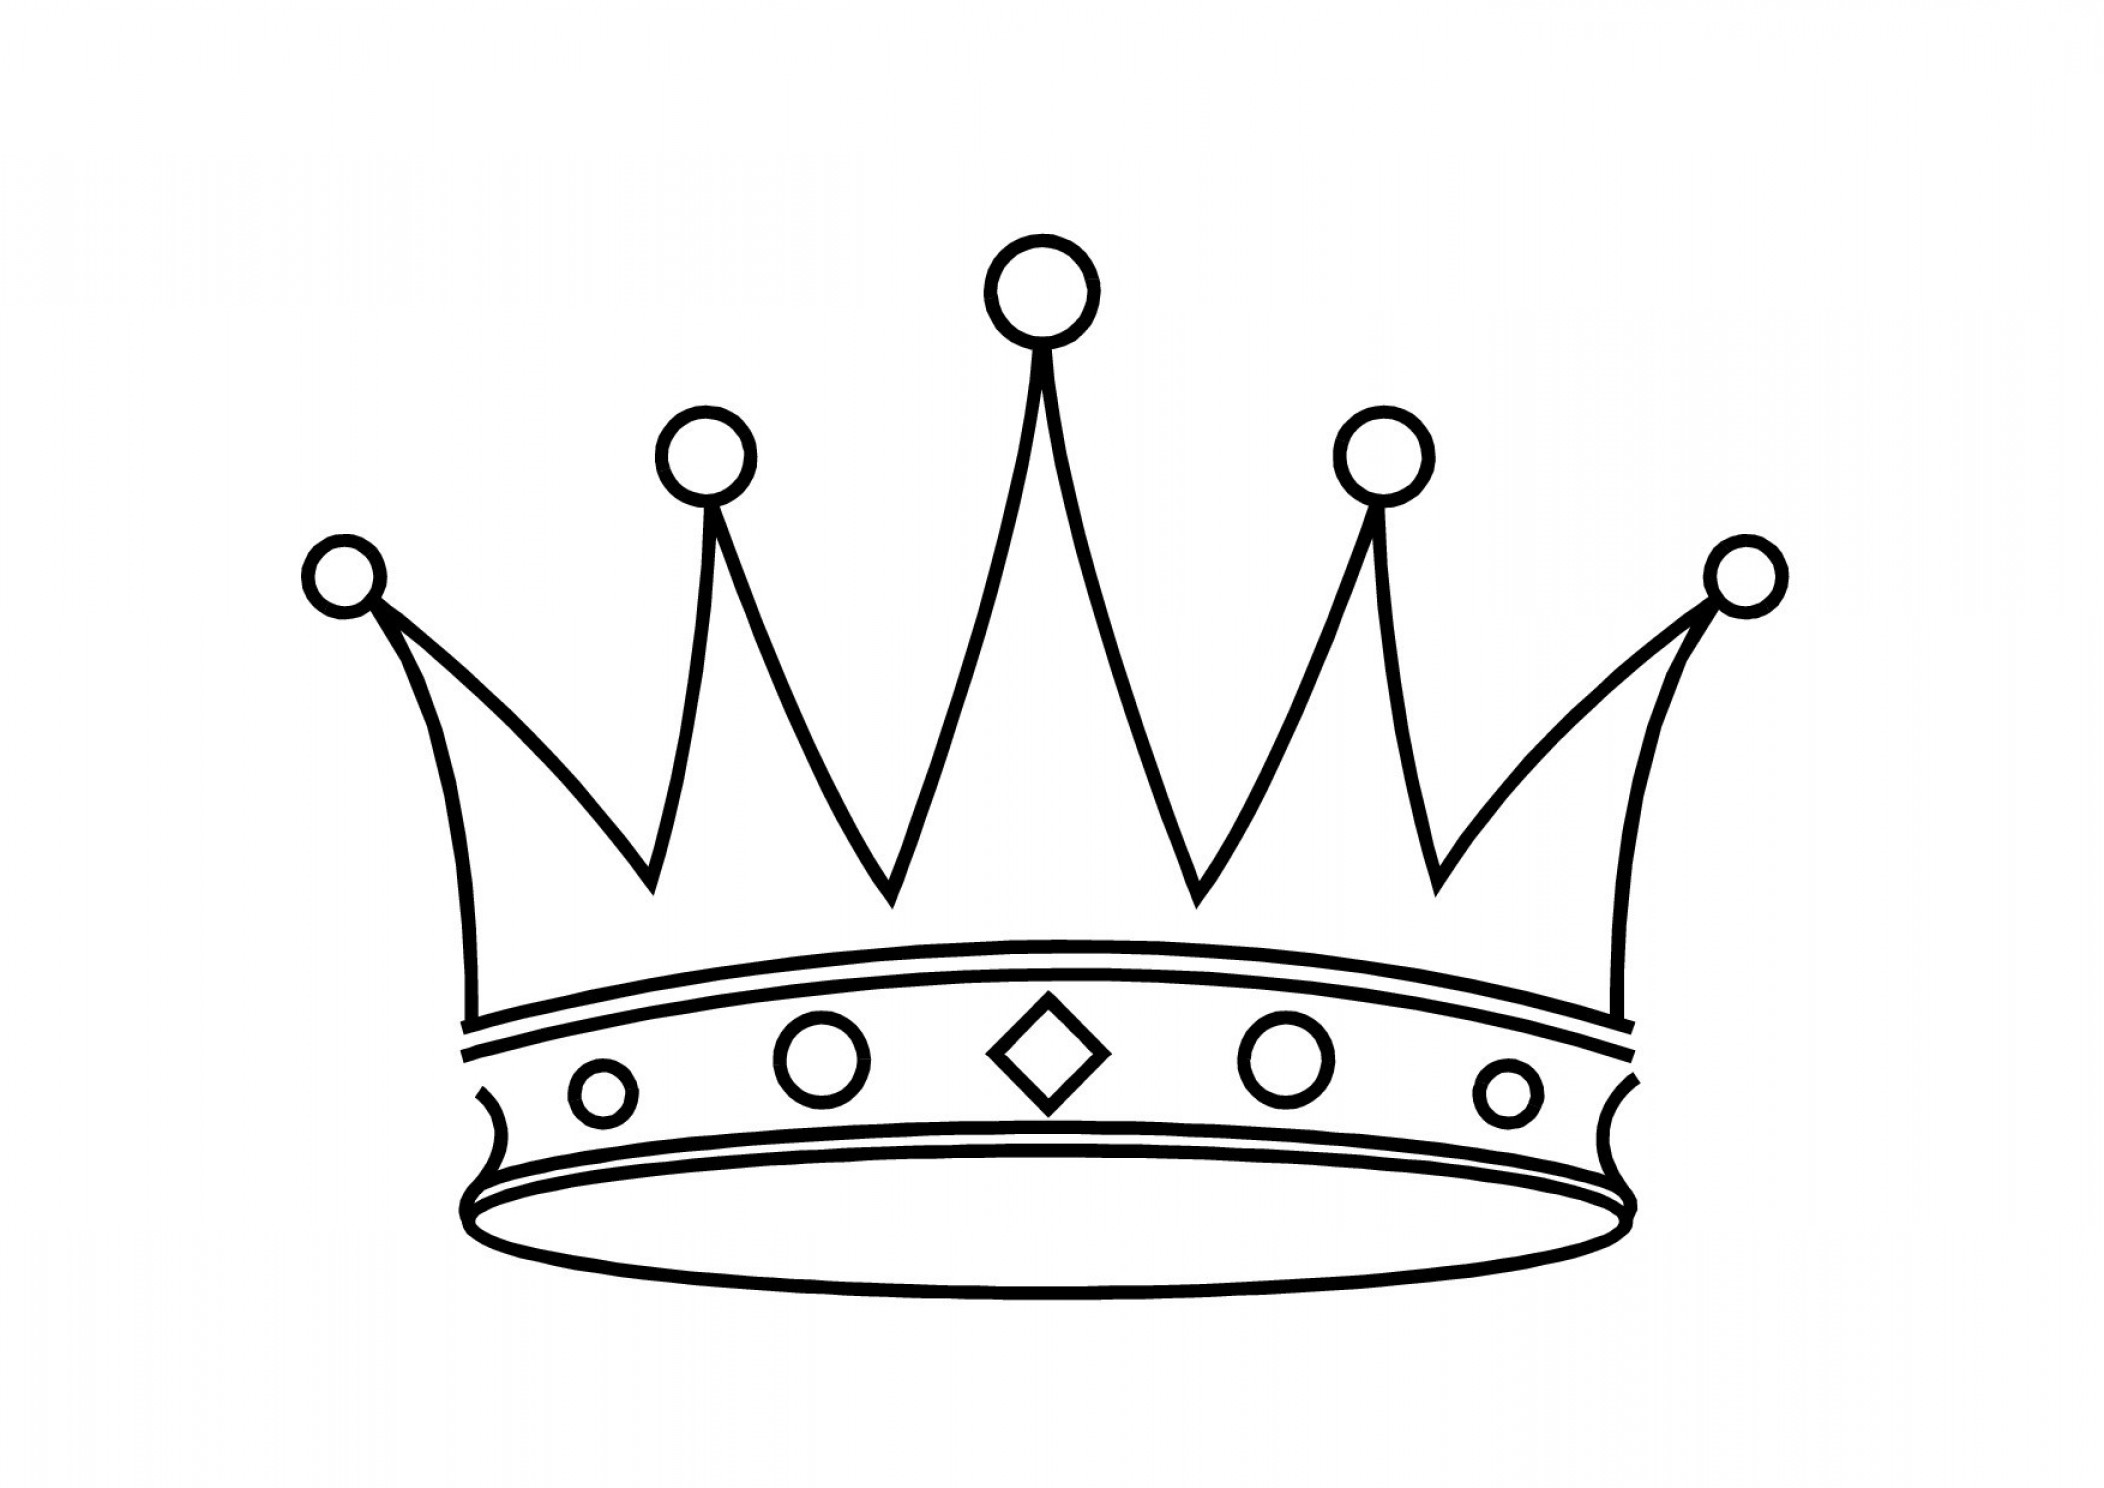 Crown Clipart Black And White Picture 2571346 Crown Clipart Black And White This png image was uploaded on january 29, 2019, 9:01 pm by user: picture 2571346 crown clipart black